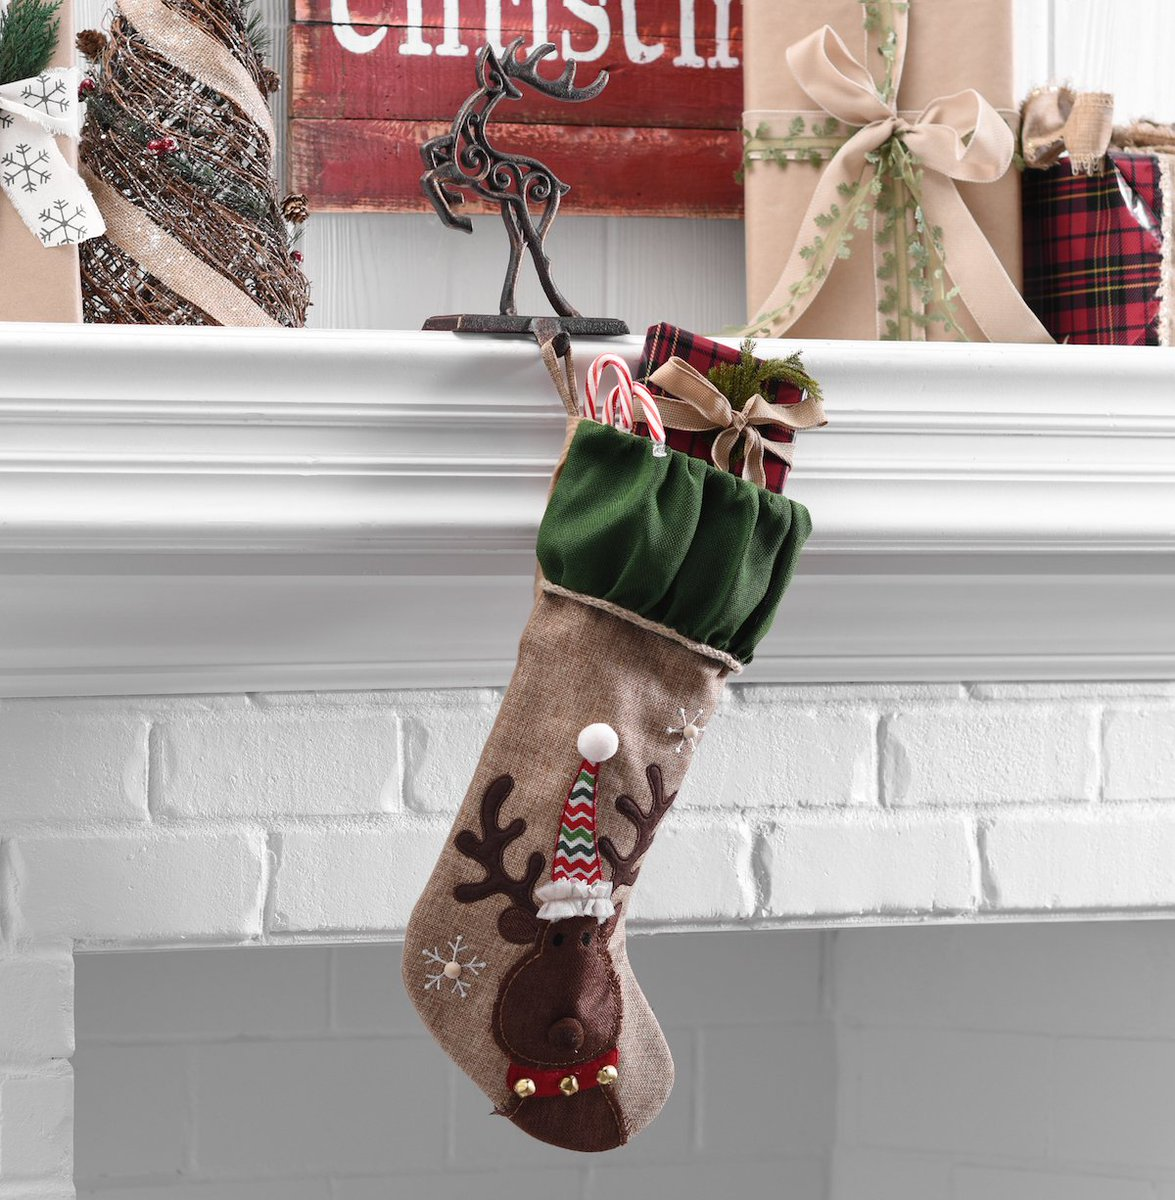 Kirkland S On Twitter Spice Up Your Mantel This Season With The Perfect Christmas Stockings Now Only 6 Dealoftheday Https T Co I4vbwkndmu Https T Co 7ndbut2z90